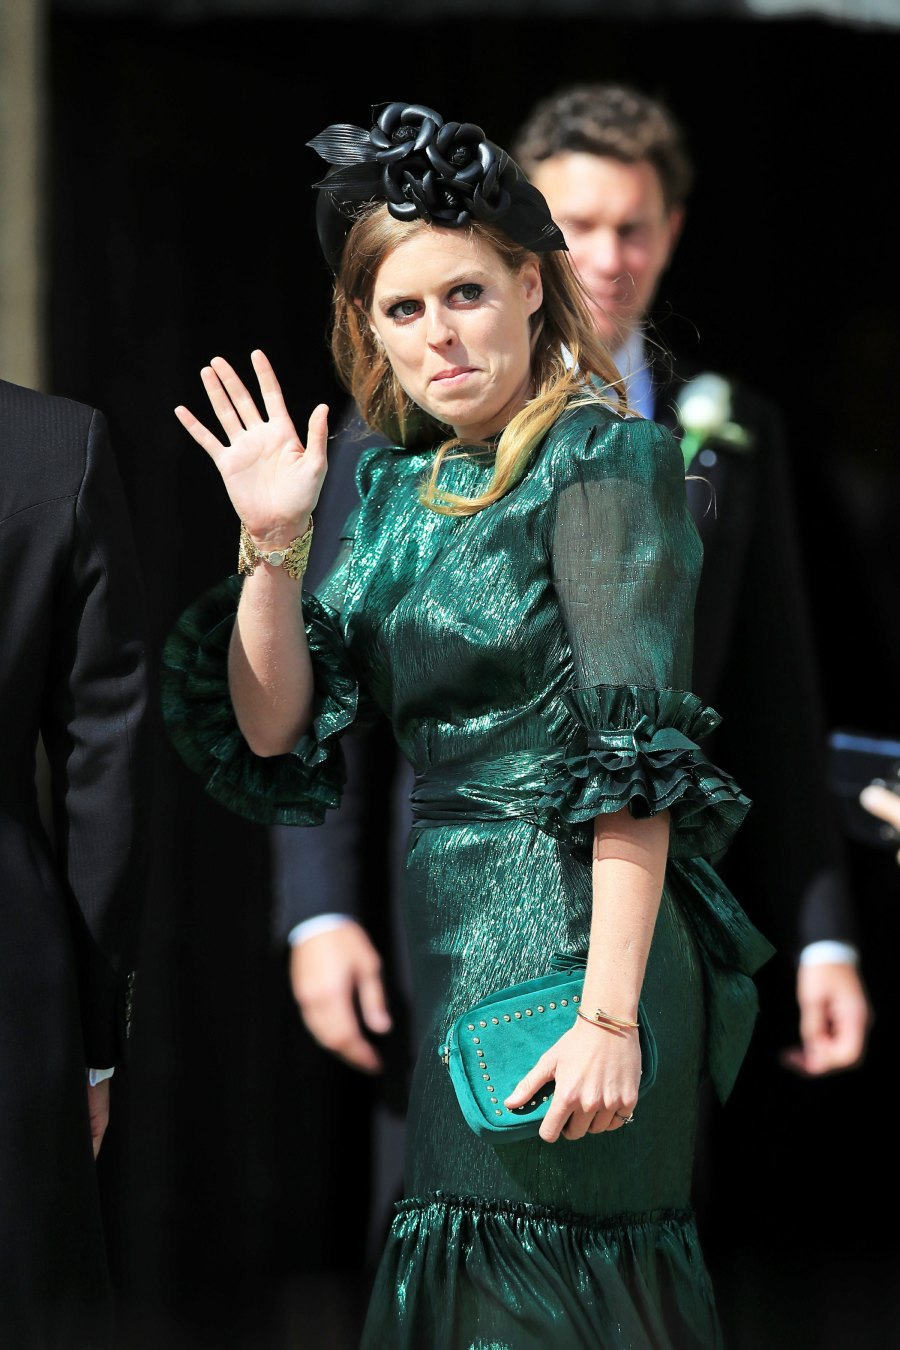 Princess Beatrice Katy Perry, Orlando Bloom, Princess Beatrice and More Celebrity Guests Attend Ellie Goulding's Wedding